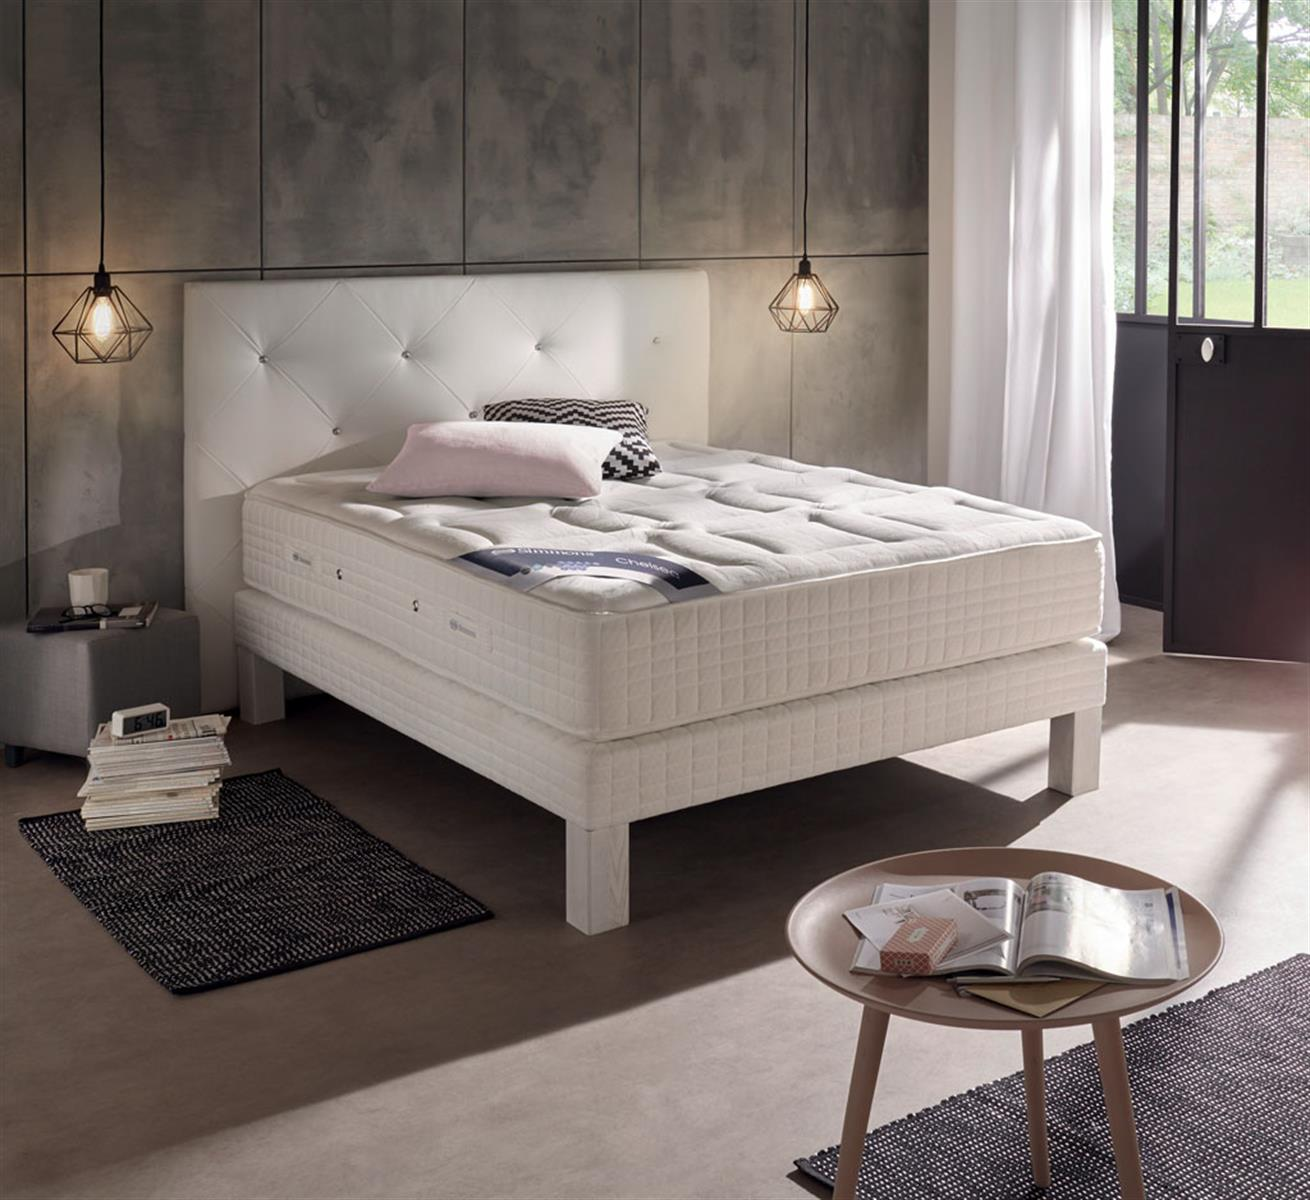 conforama m bel schlafzimmer editus. Black Bedroom Furniture Sets. Home Design Ideas